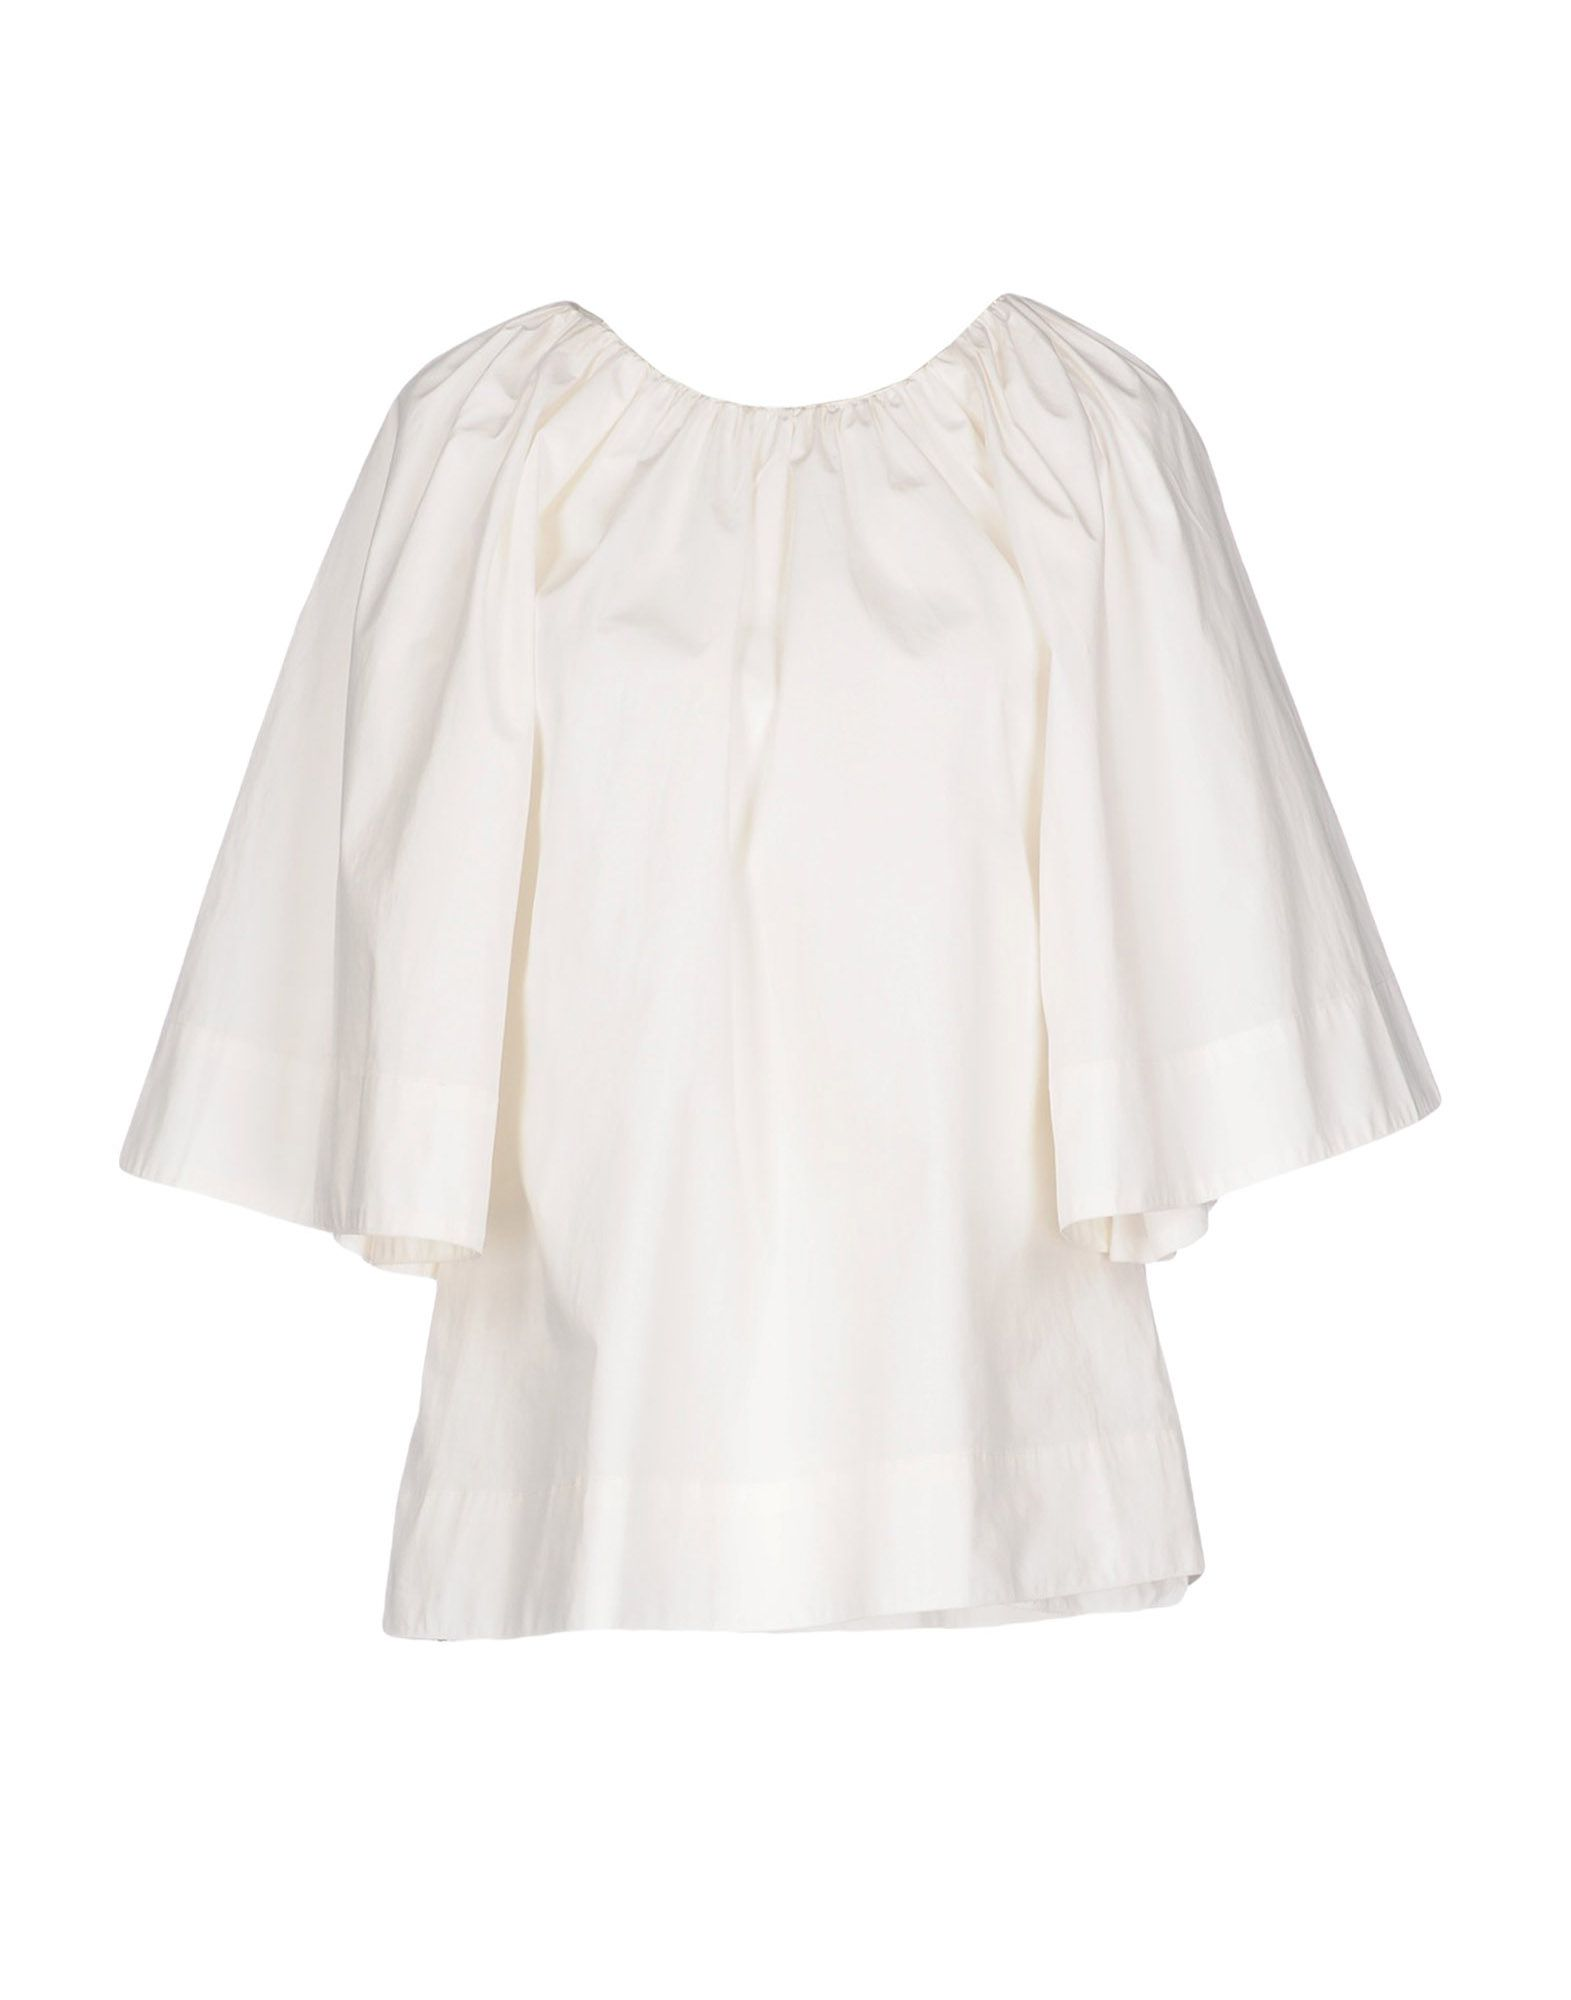 LF MARKEY Blouse in White